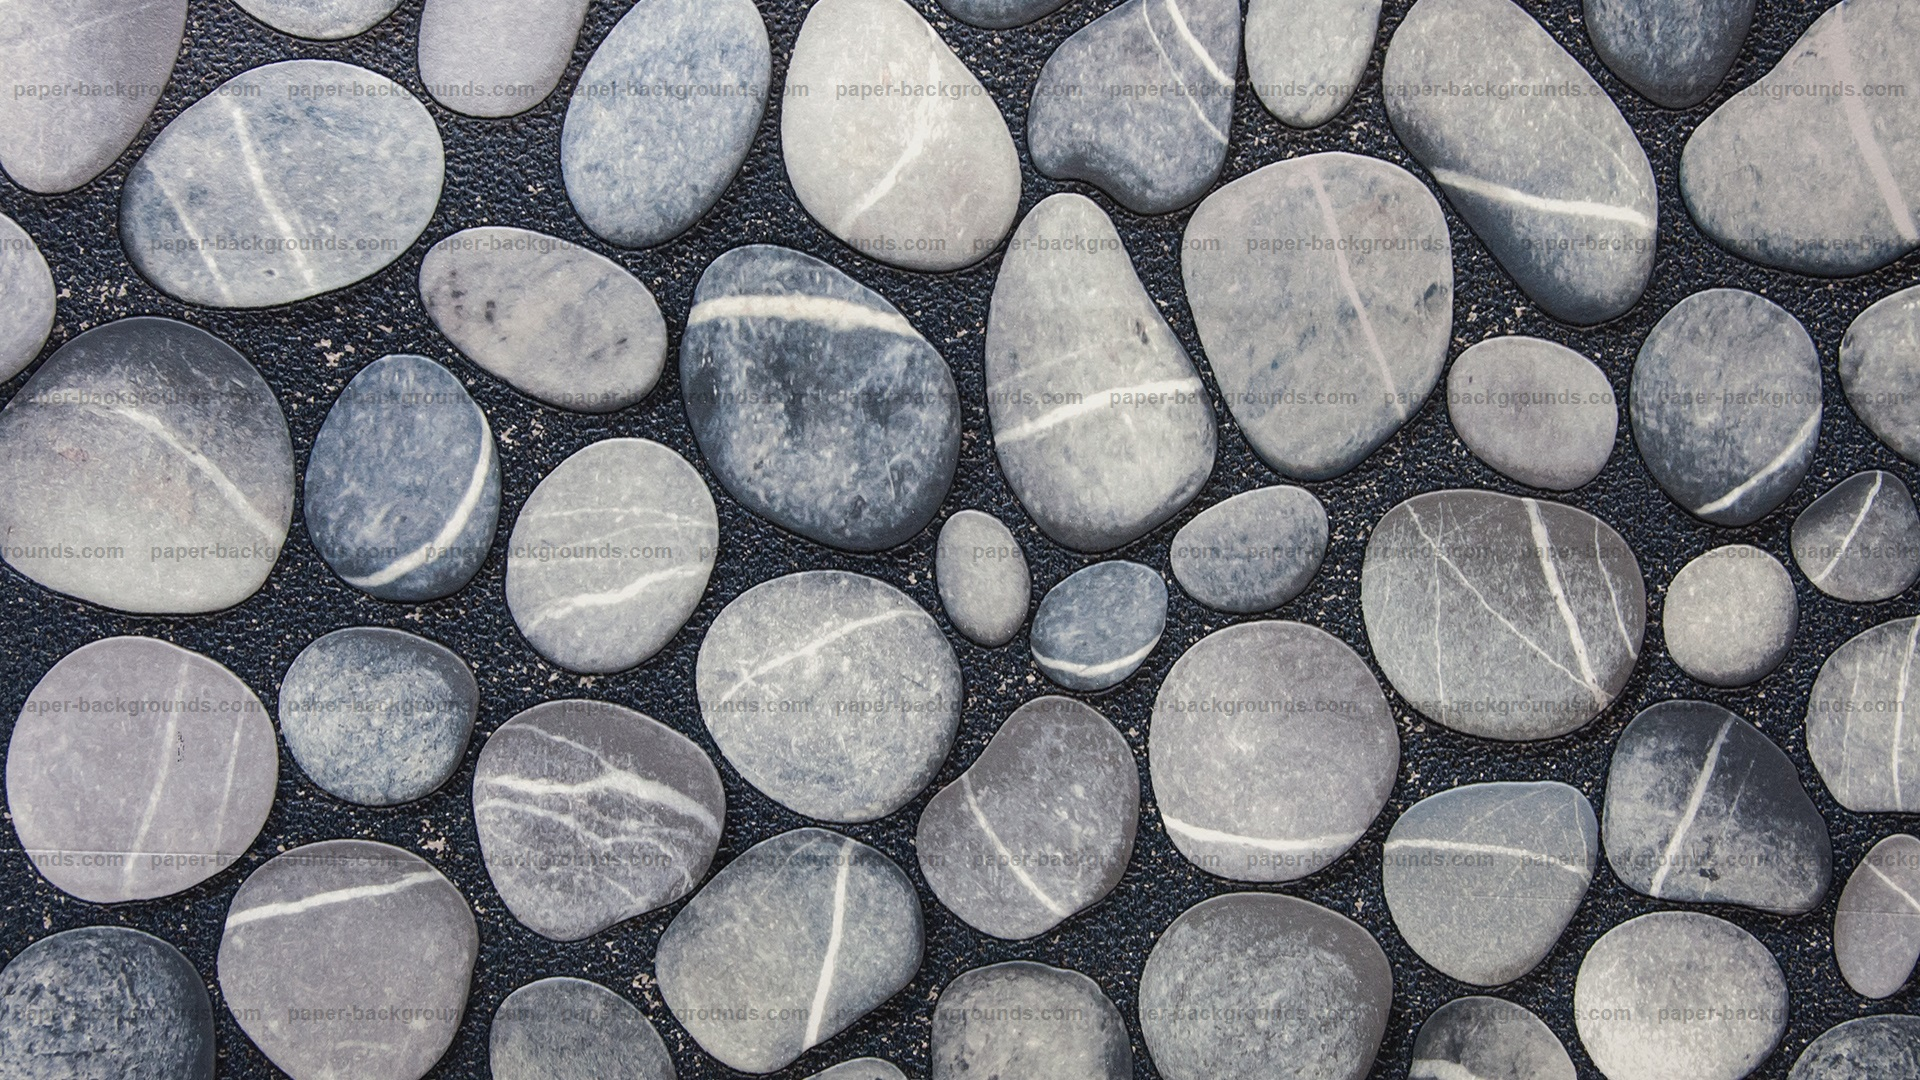 Stone Images hd Stones Carpet Background hd